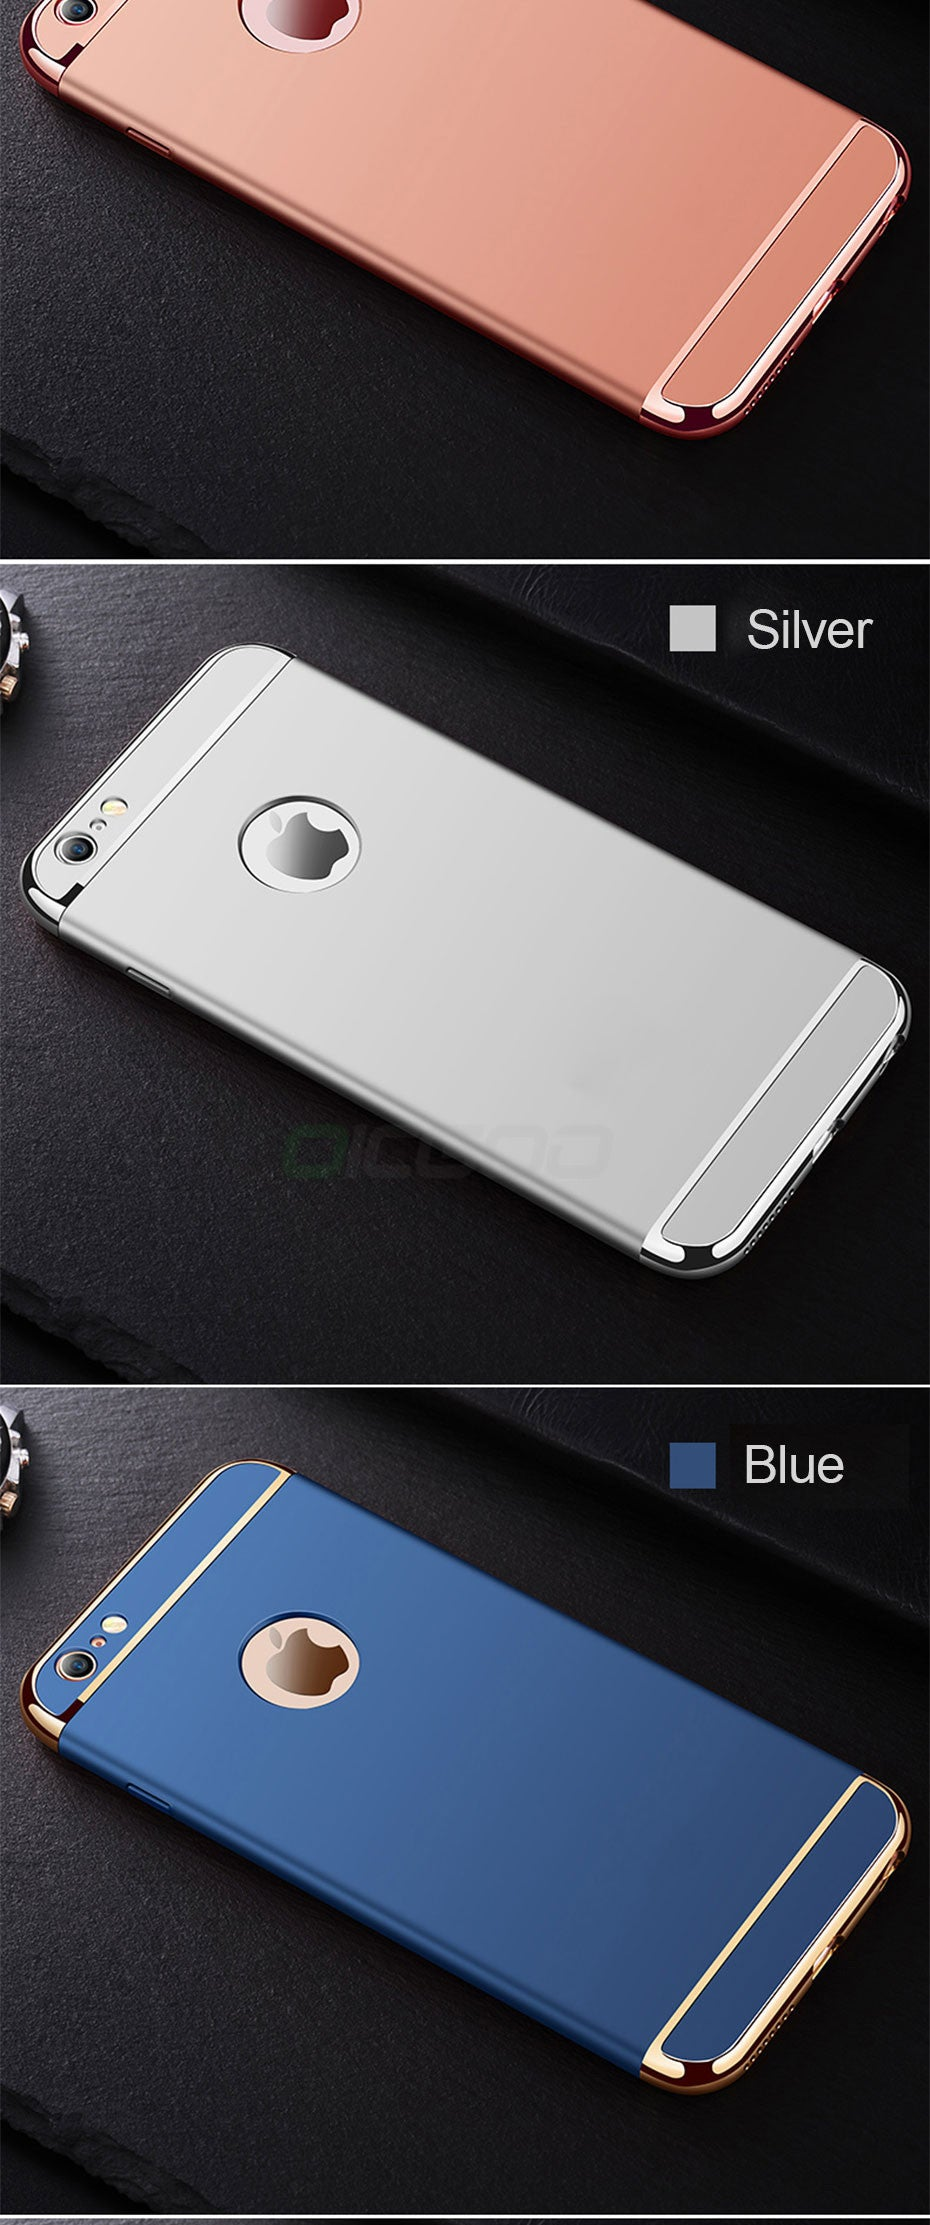 The Luxury Silver Bullet Phone Case